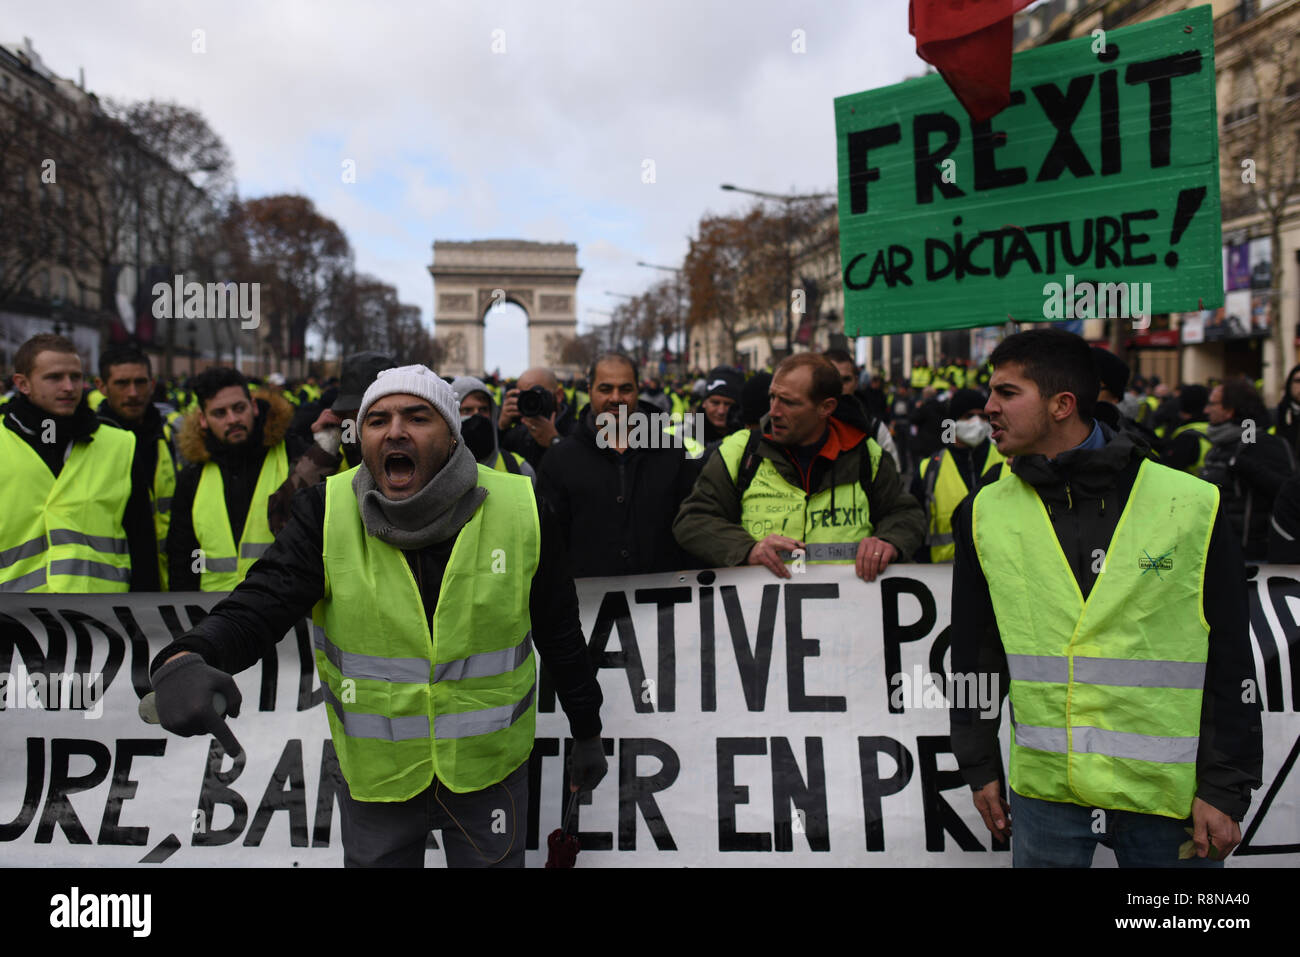 December 08, 2018 - Paris, France: Portrait of Farouk Largo (with a white beanie ), a Yellow Vest protester as he calls for a referendum against French President Emmanuel Macron.  Manifestation des Gilets Jaunes du 8 decembre a Paris, l'acte IV de leur mobilisation. *** FRANCE OUT / NO SALES TO FRENCH MEDIA *** - Stock Image